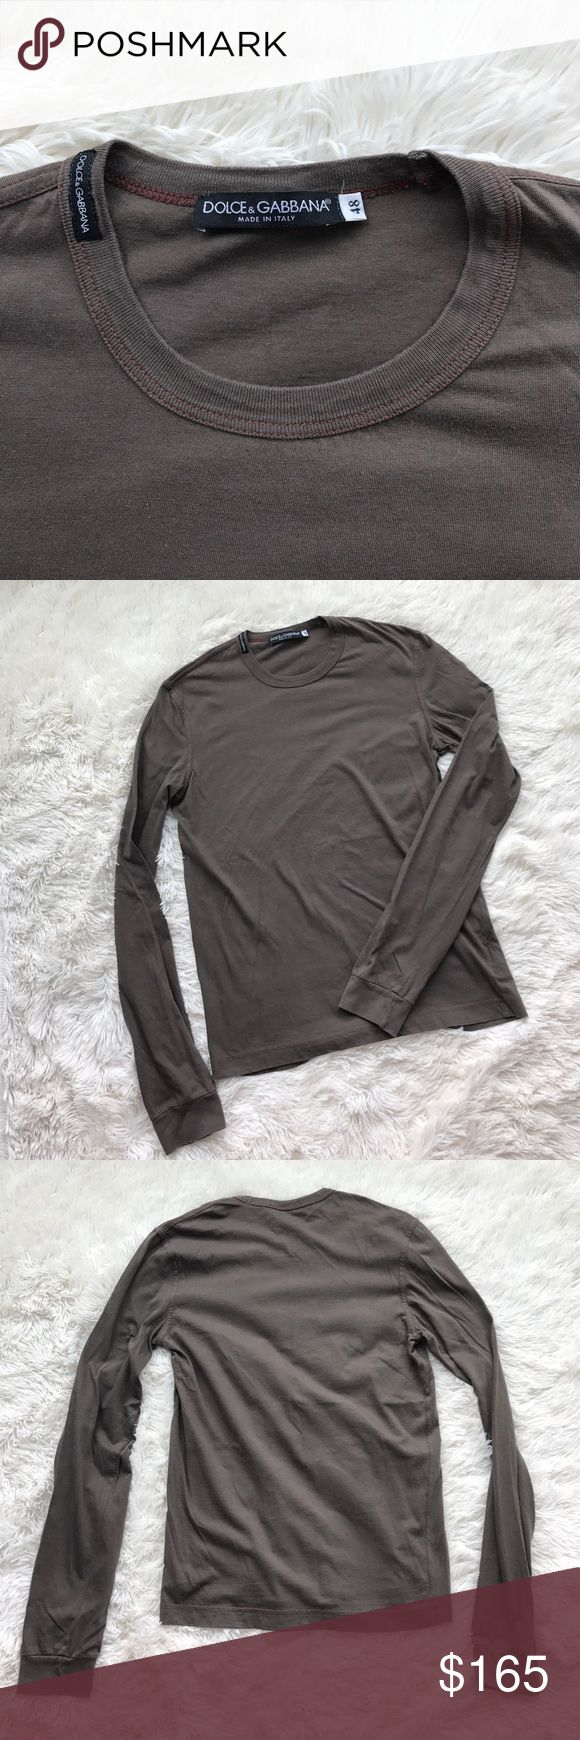 Dolce and Gabbana Shirt long sleeve olive green/brown t shirt with Dolce and Gabbana patch on neck. IT size 49, Men's US size M Dolce & Gabbana Shirts Tees - Long Sleeve